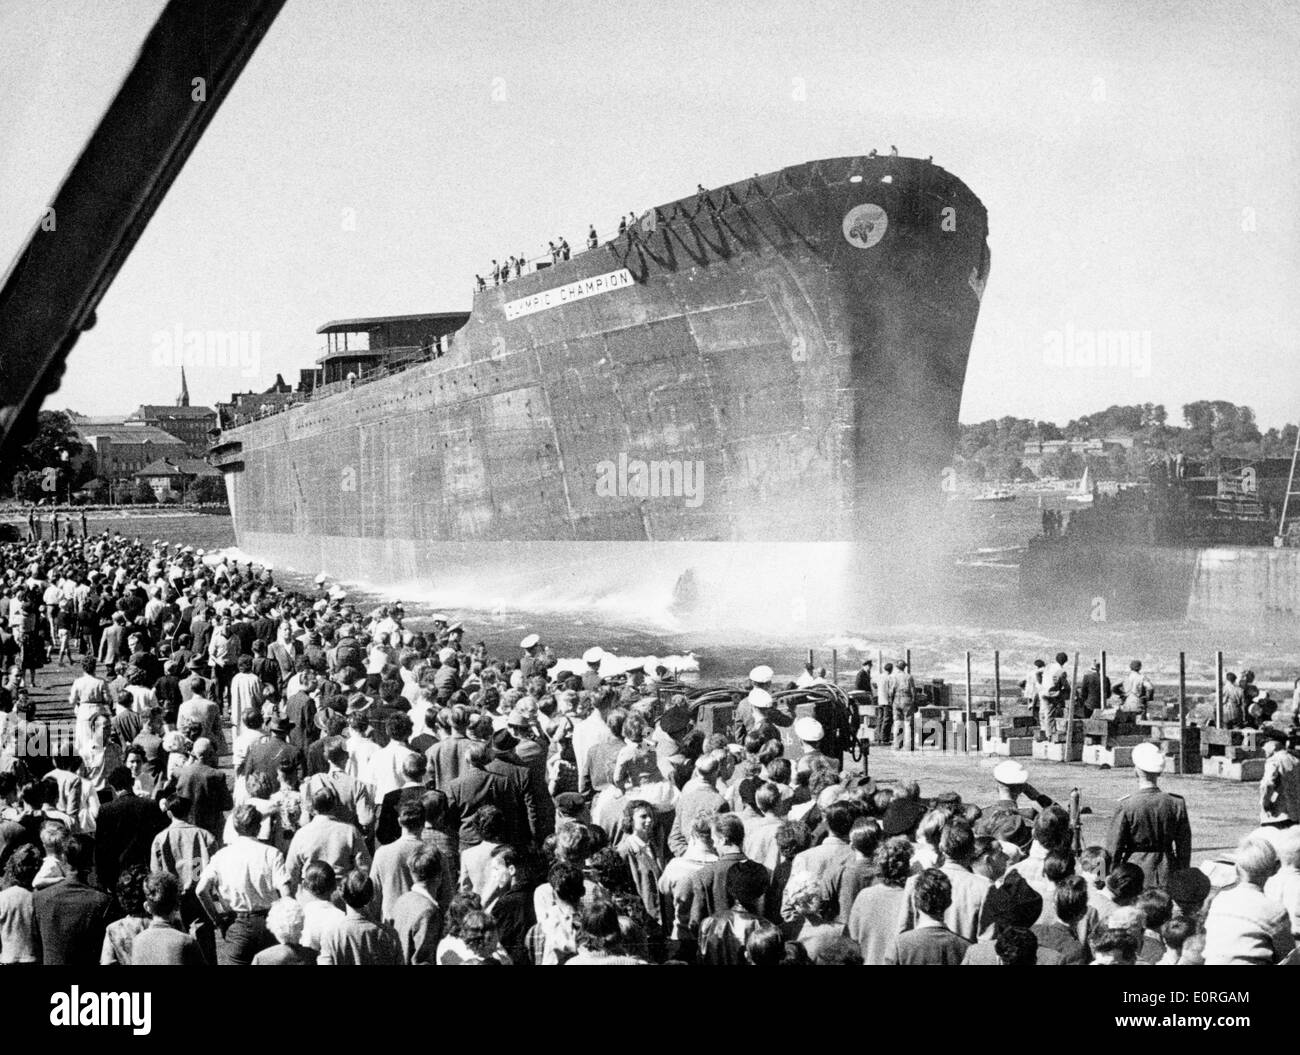 Launching of the Onassis shipping liner 'Olympic Champion' - Stock Image